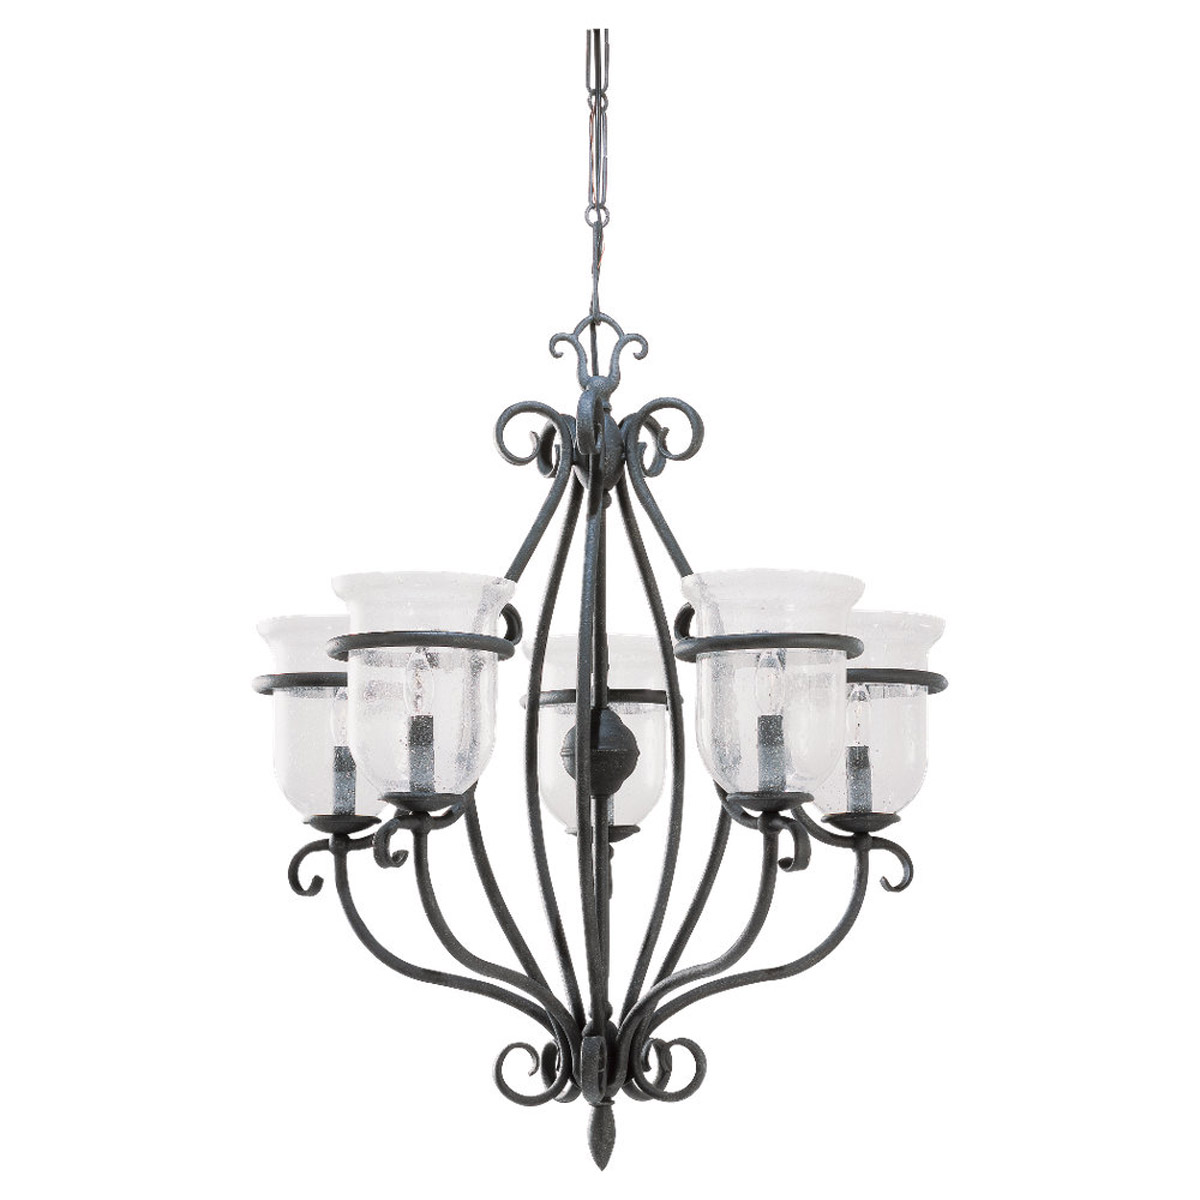 Sea Gull Lighting Manor House 5 Light Chandelier in Weathered Iron 3401-07 photo